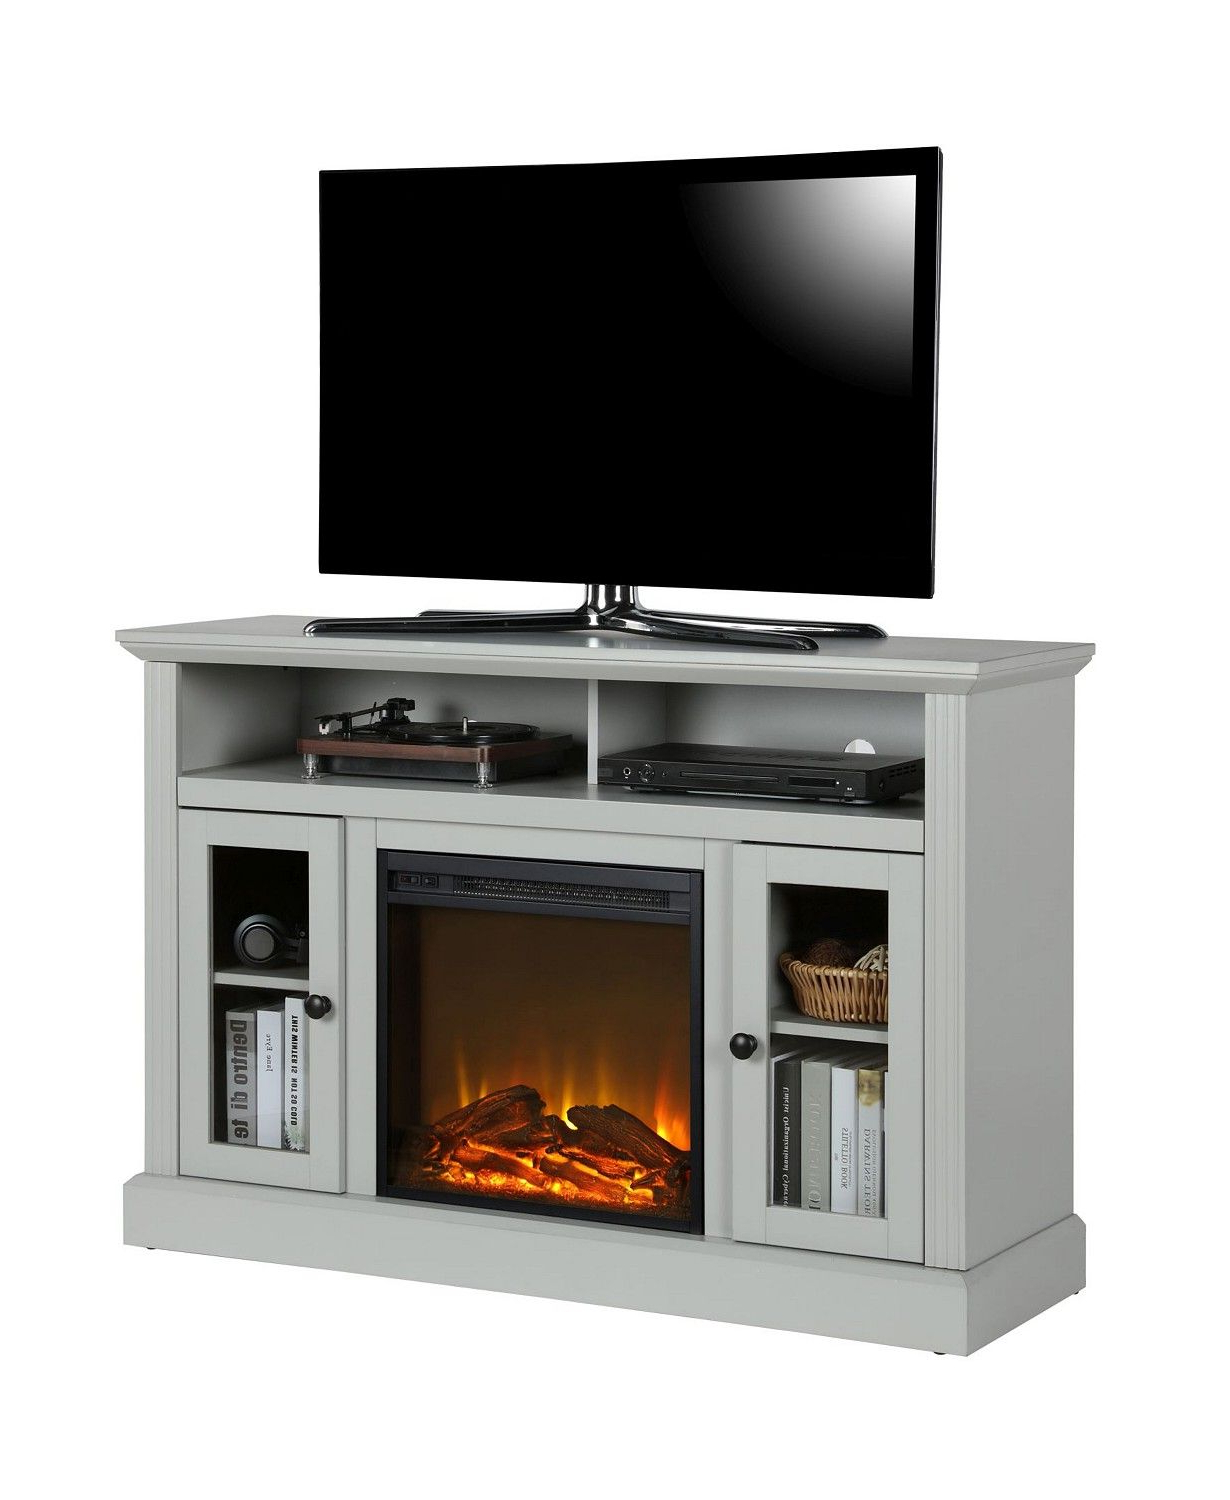 """Widely Used Virginia Tv Stands For Tvs Up To 50"""" Regarding Ameriwood Home Tacoma Electric Fireplace Tv Console For (View 19 of 25)"""